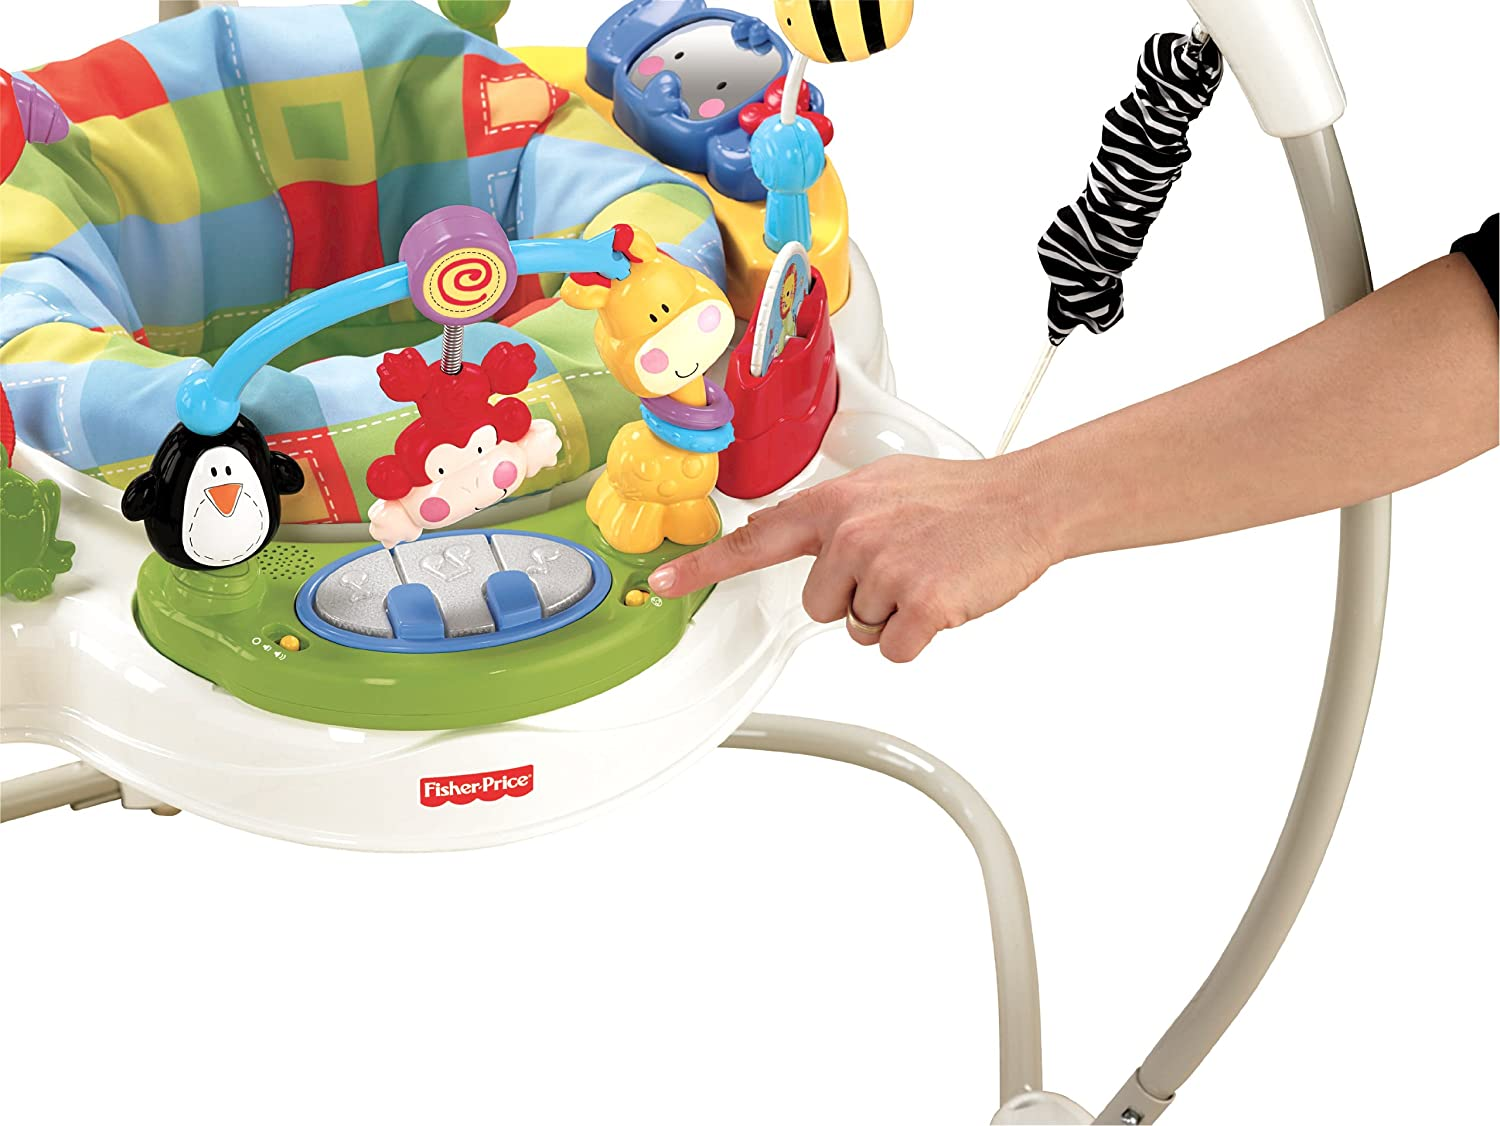 Fisher price jumperoo - Amazon Com Fisher Price Discover N Grow Jumperoo Stationary Stand Up Baby Activity Centers Baby